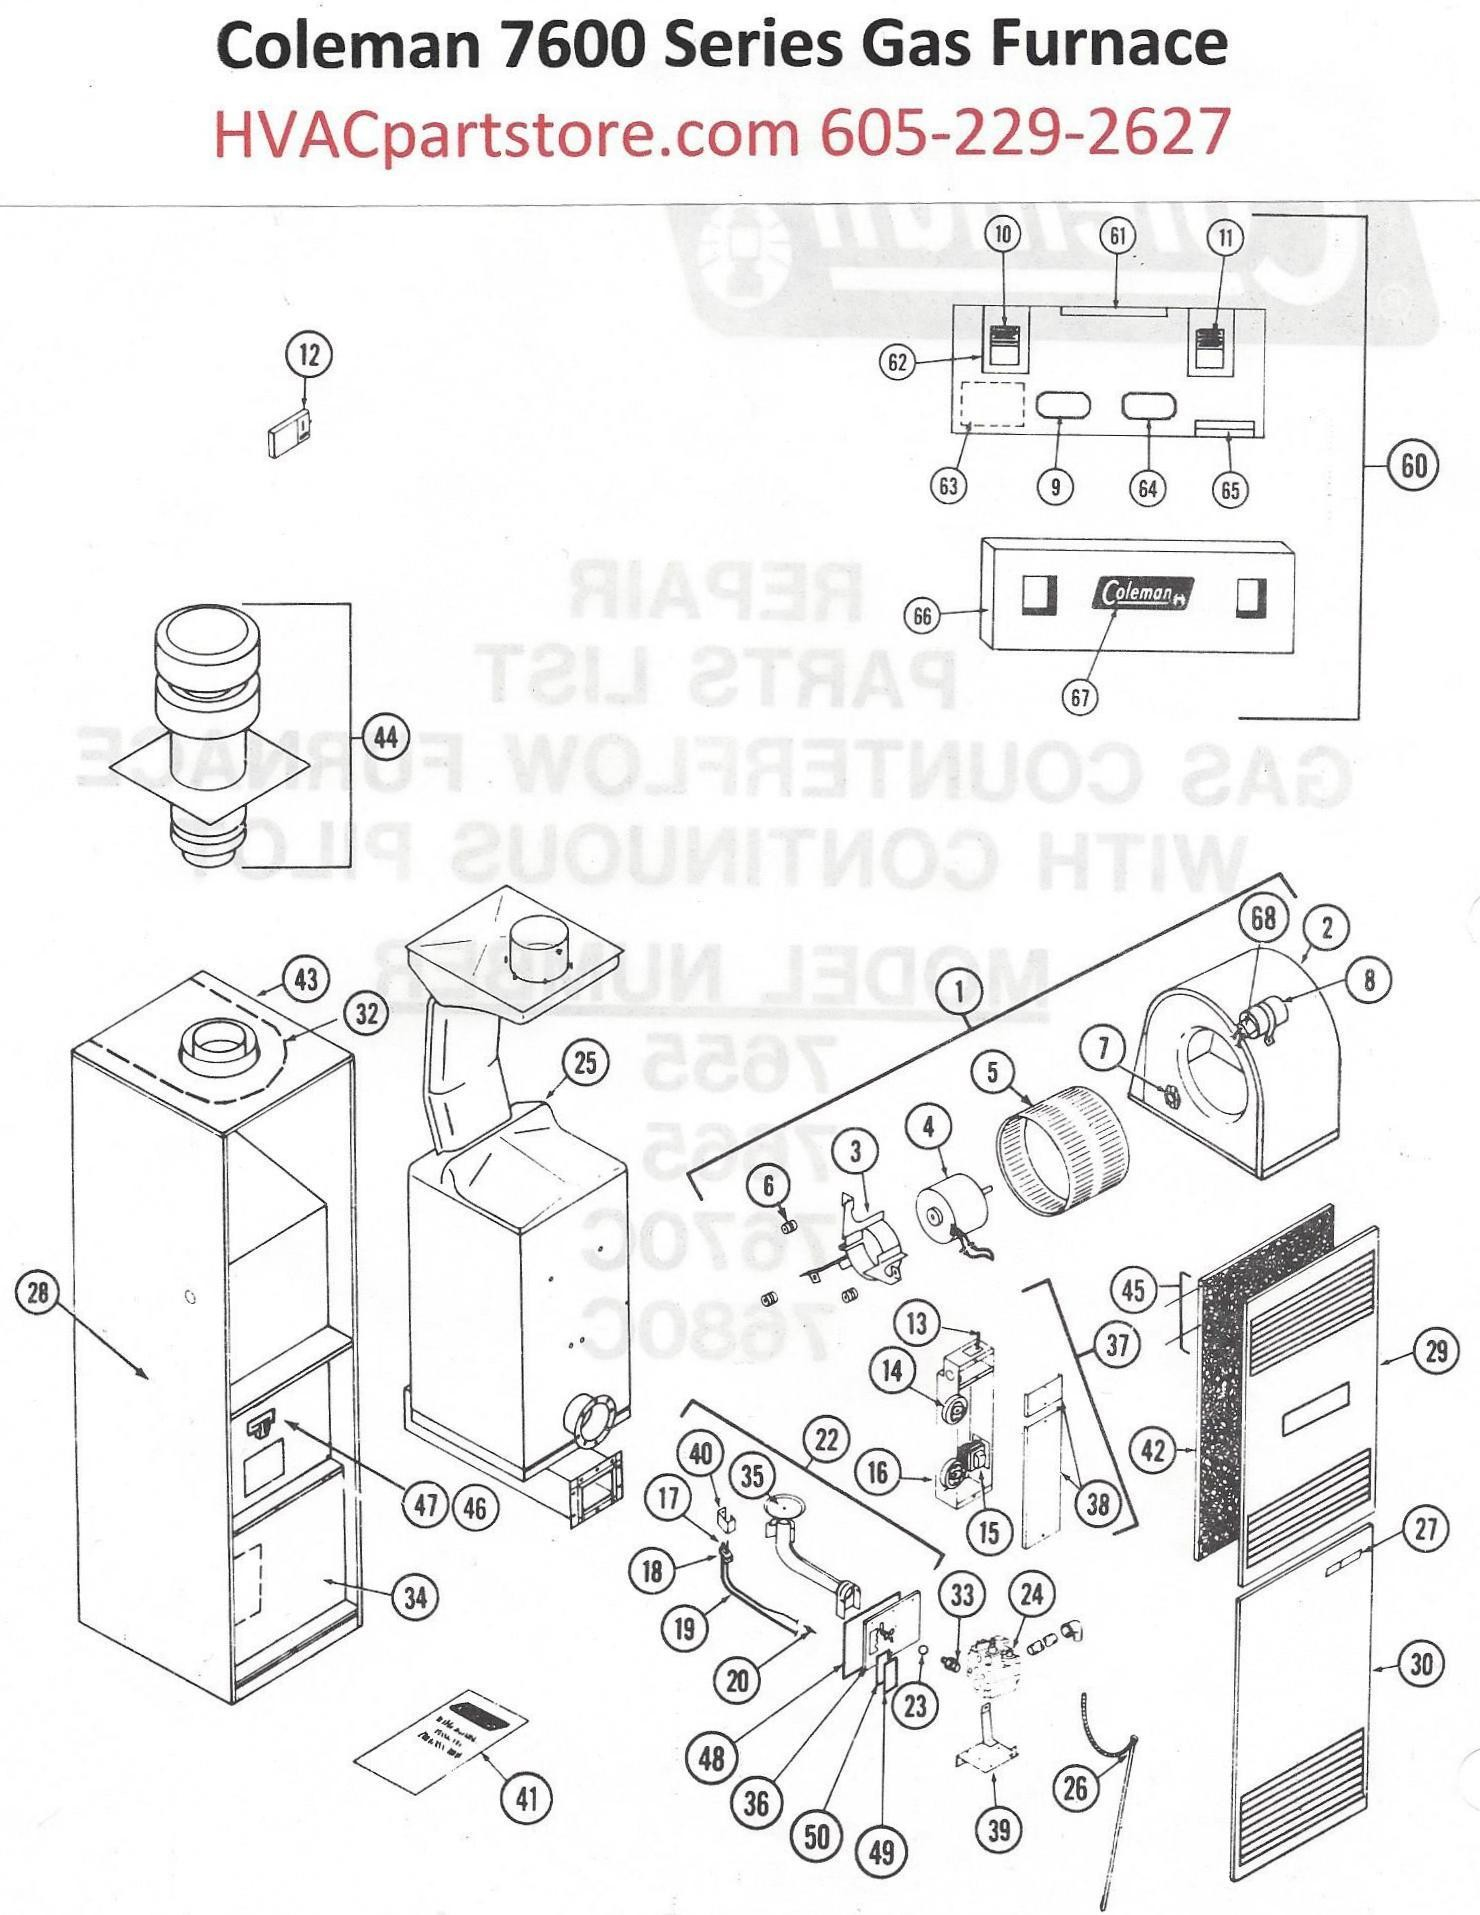 Automatic Vent Damper Wiring Diagram Best Of